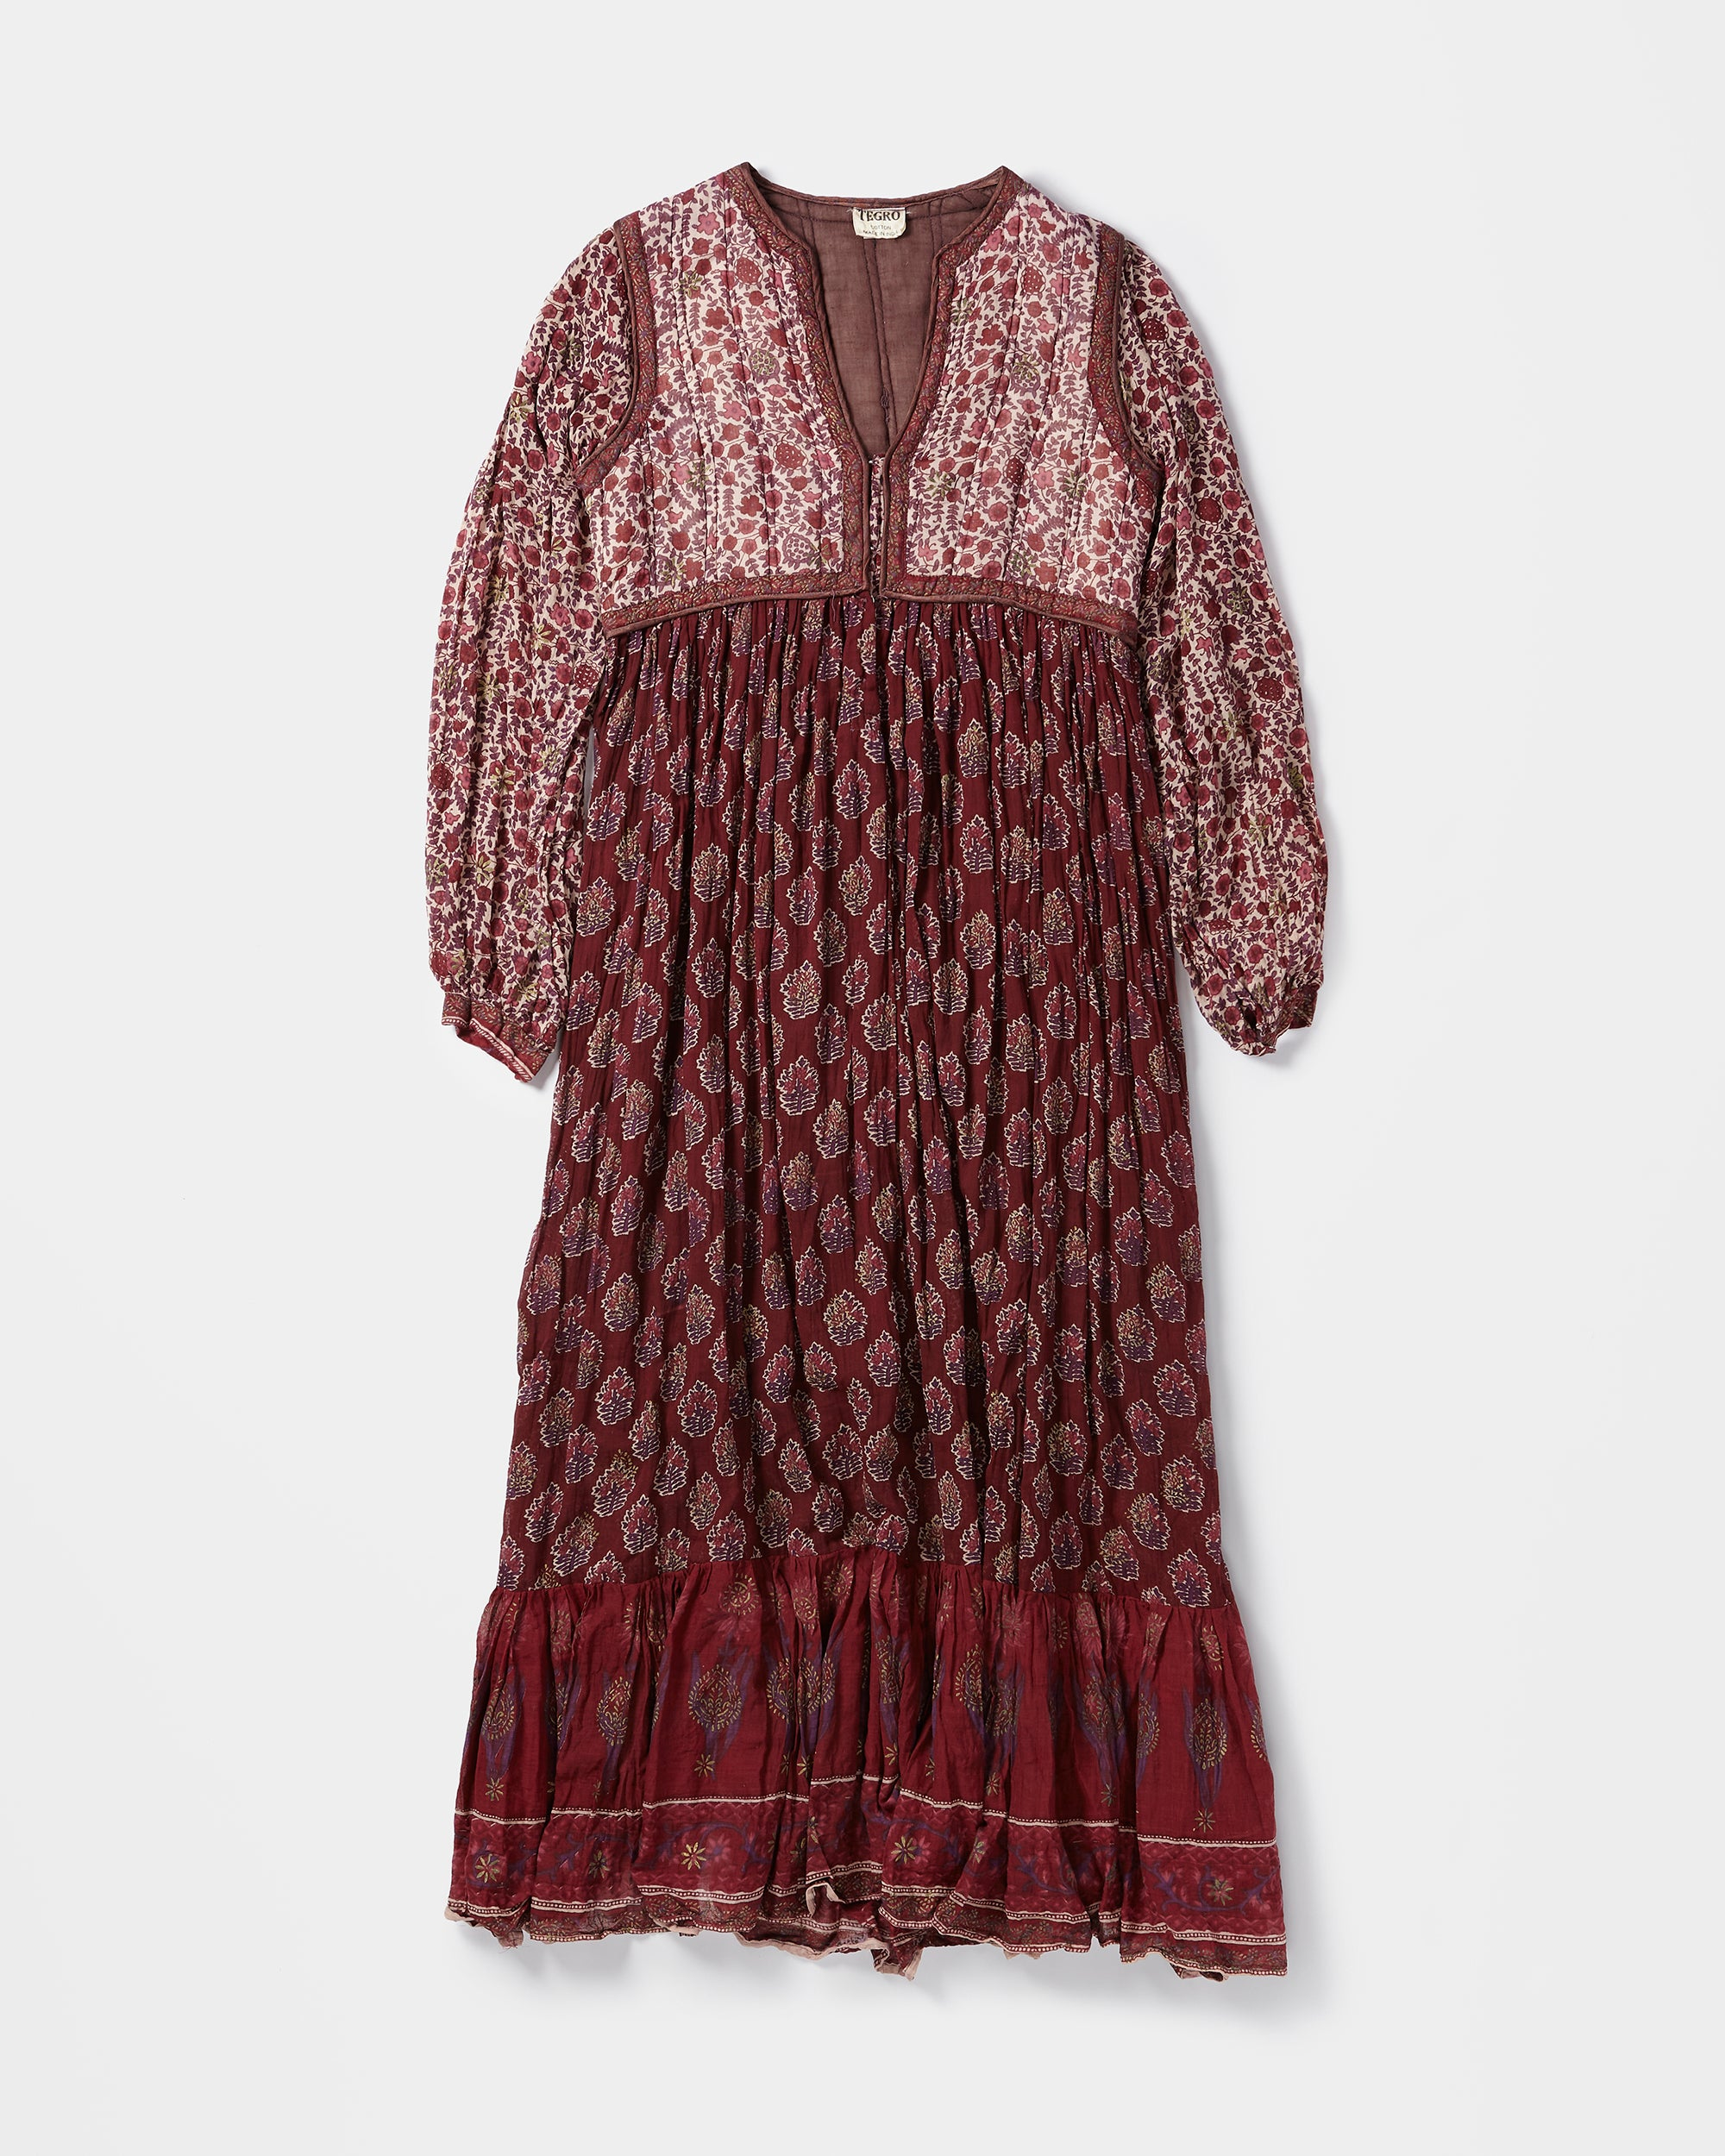 Quilted Top Indian Cotton Ethnic Long Dress